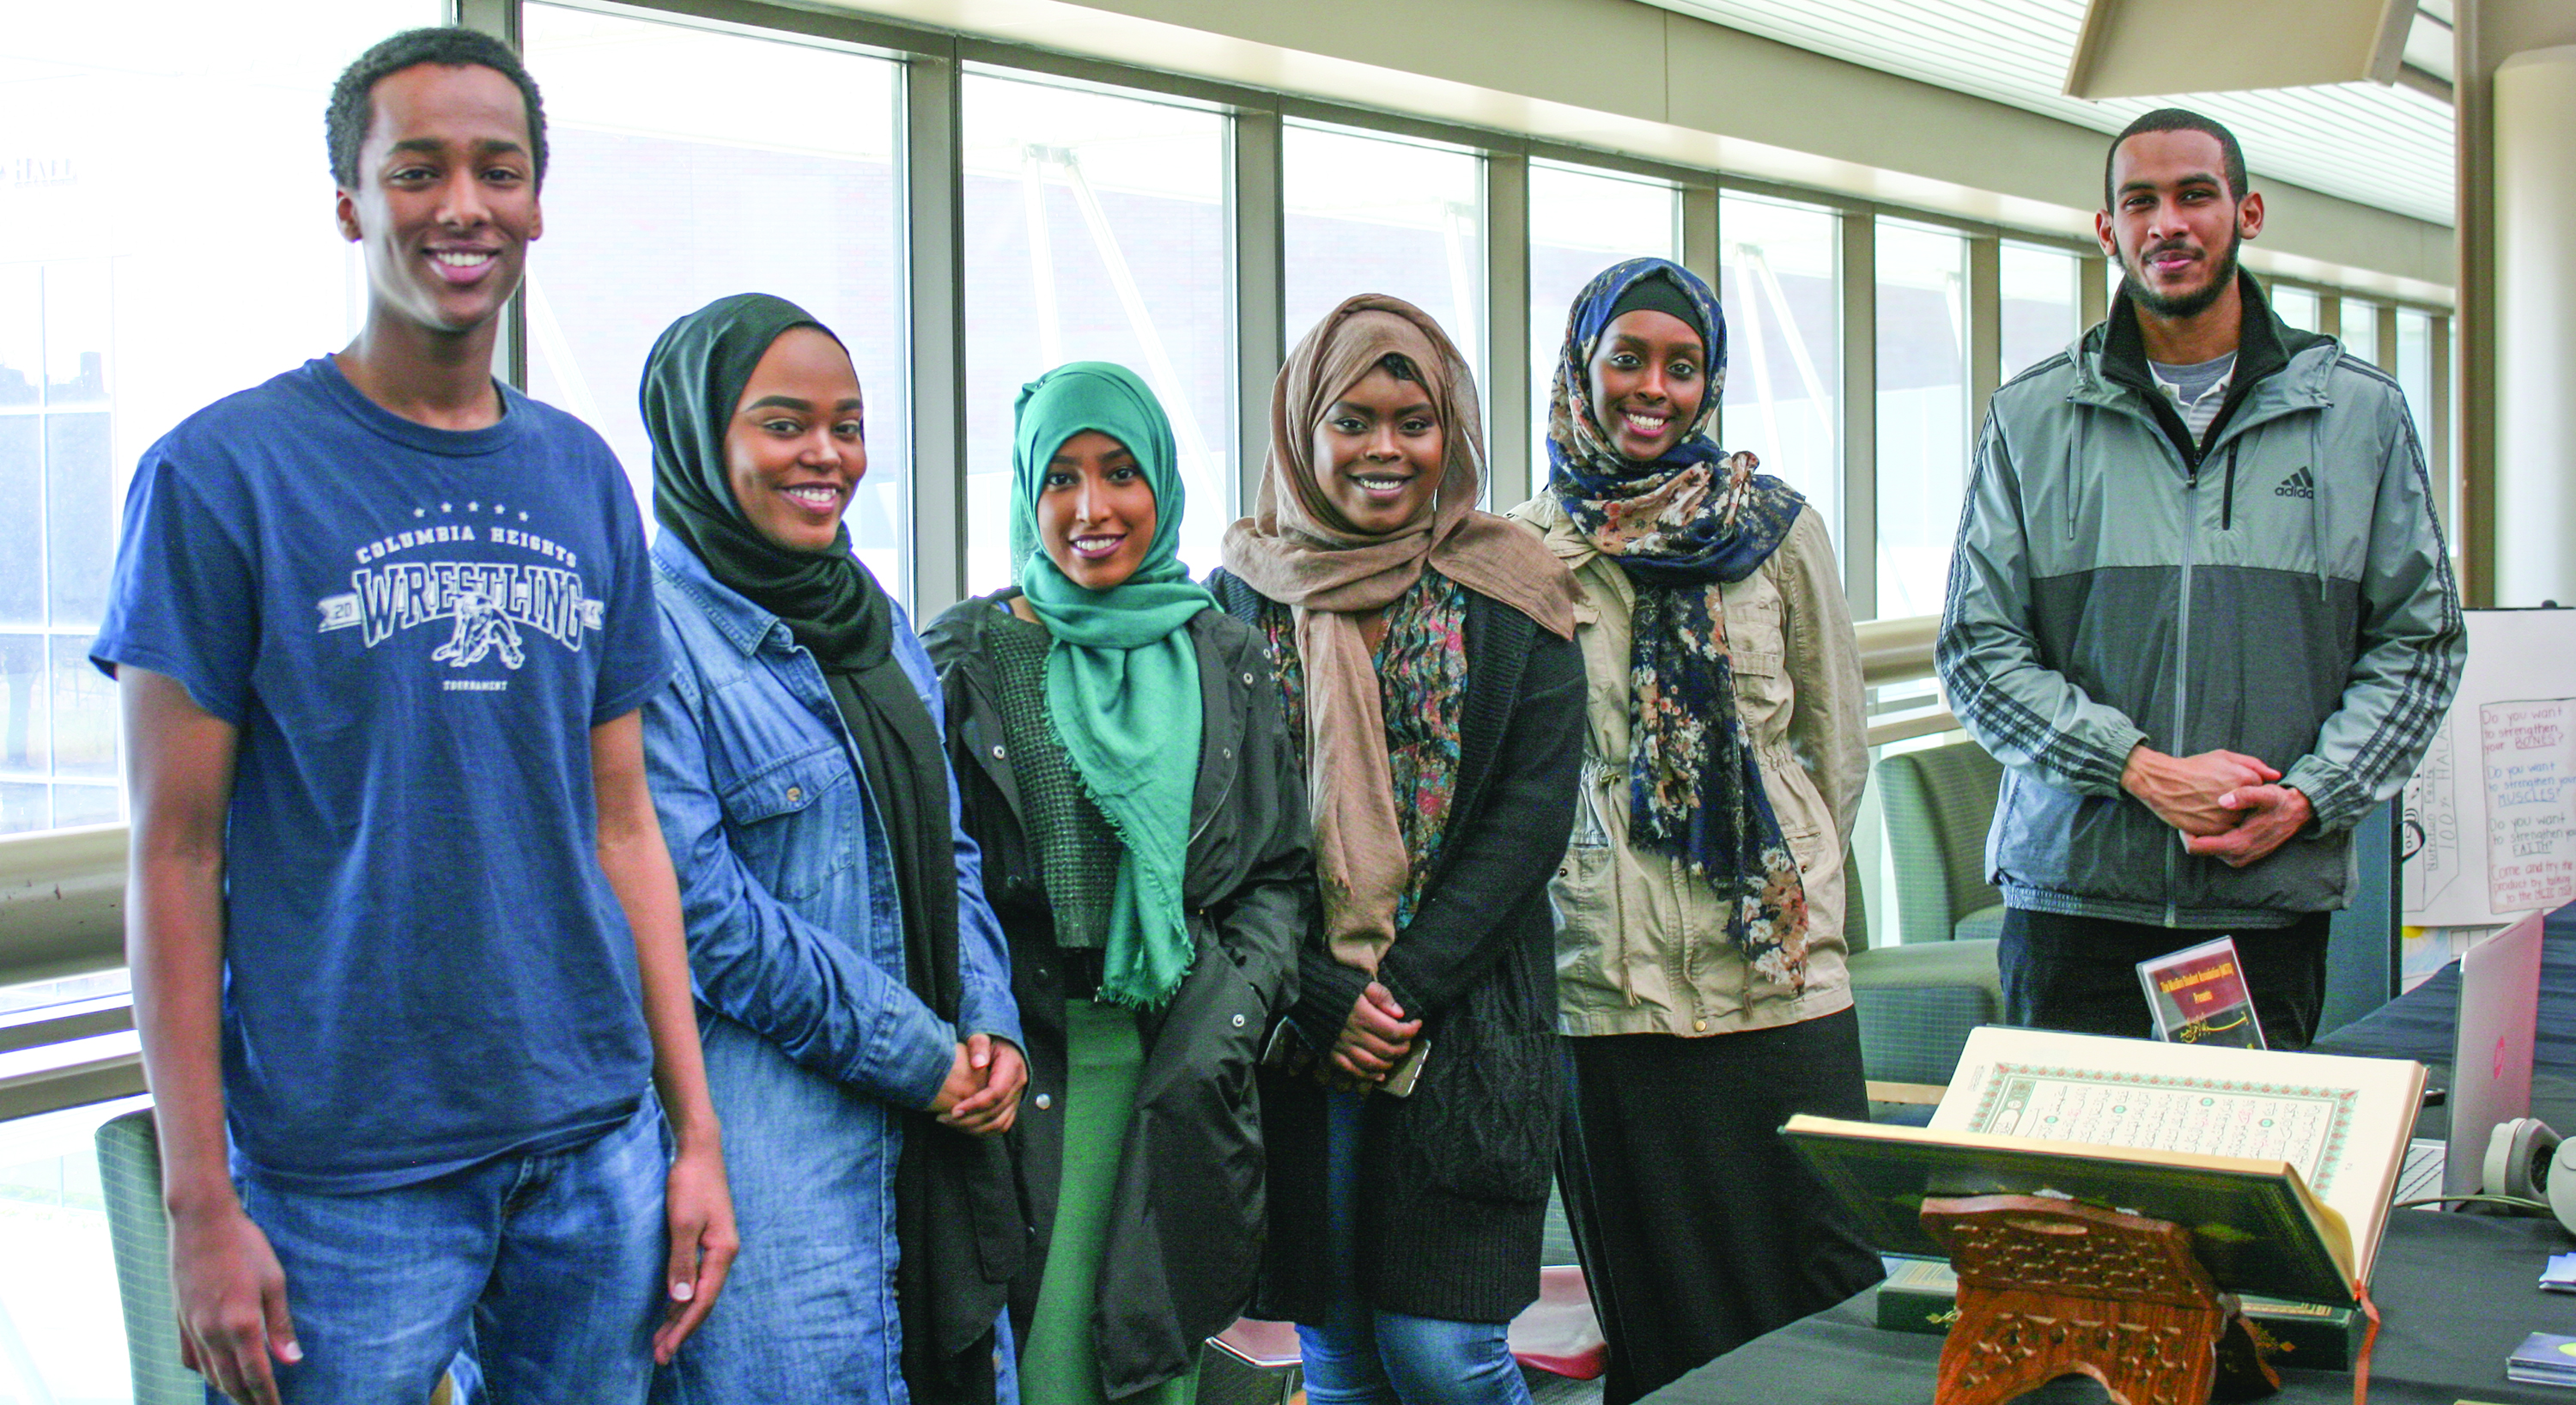 MSA fights Islamaphobia by hosting interactive events for Islamic awareness week